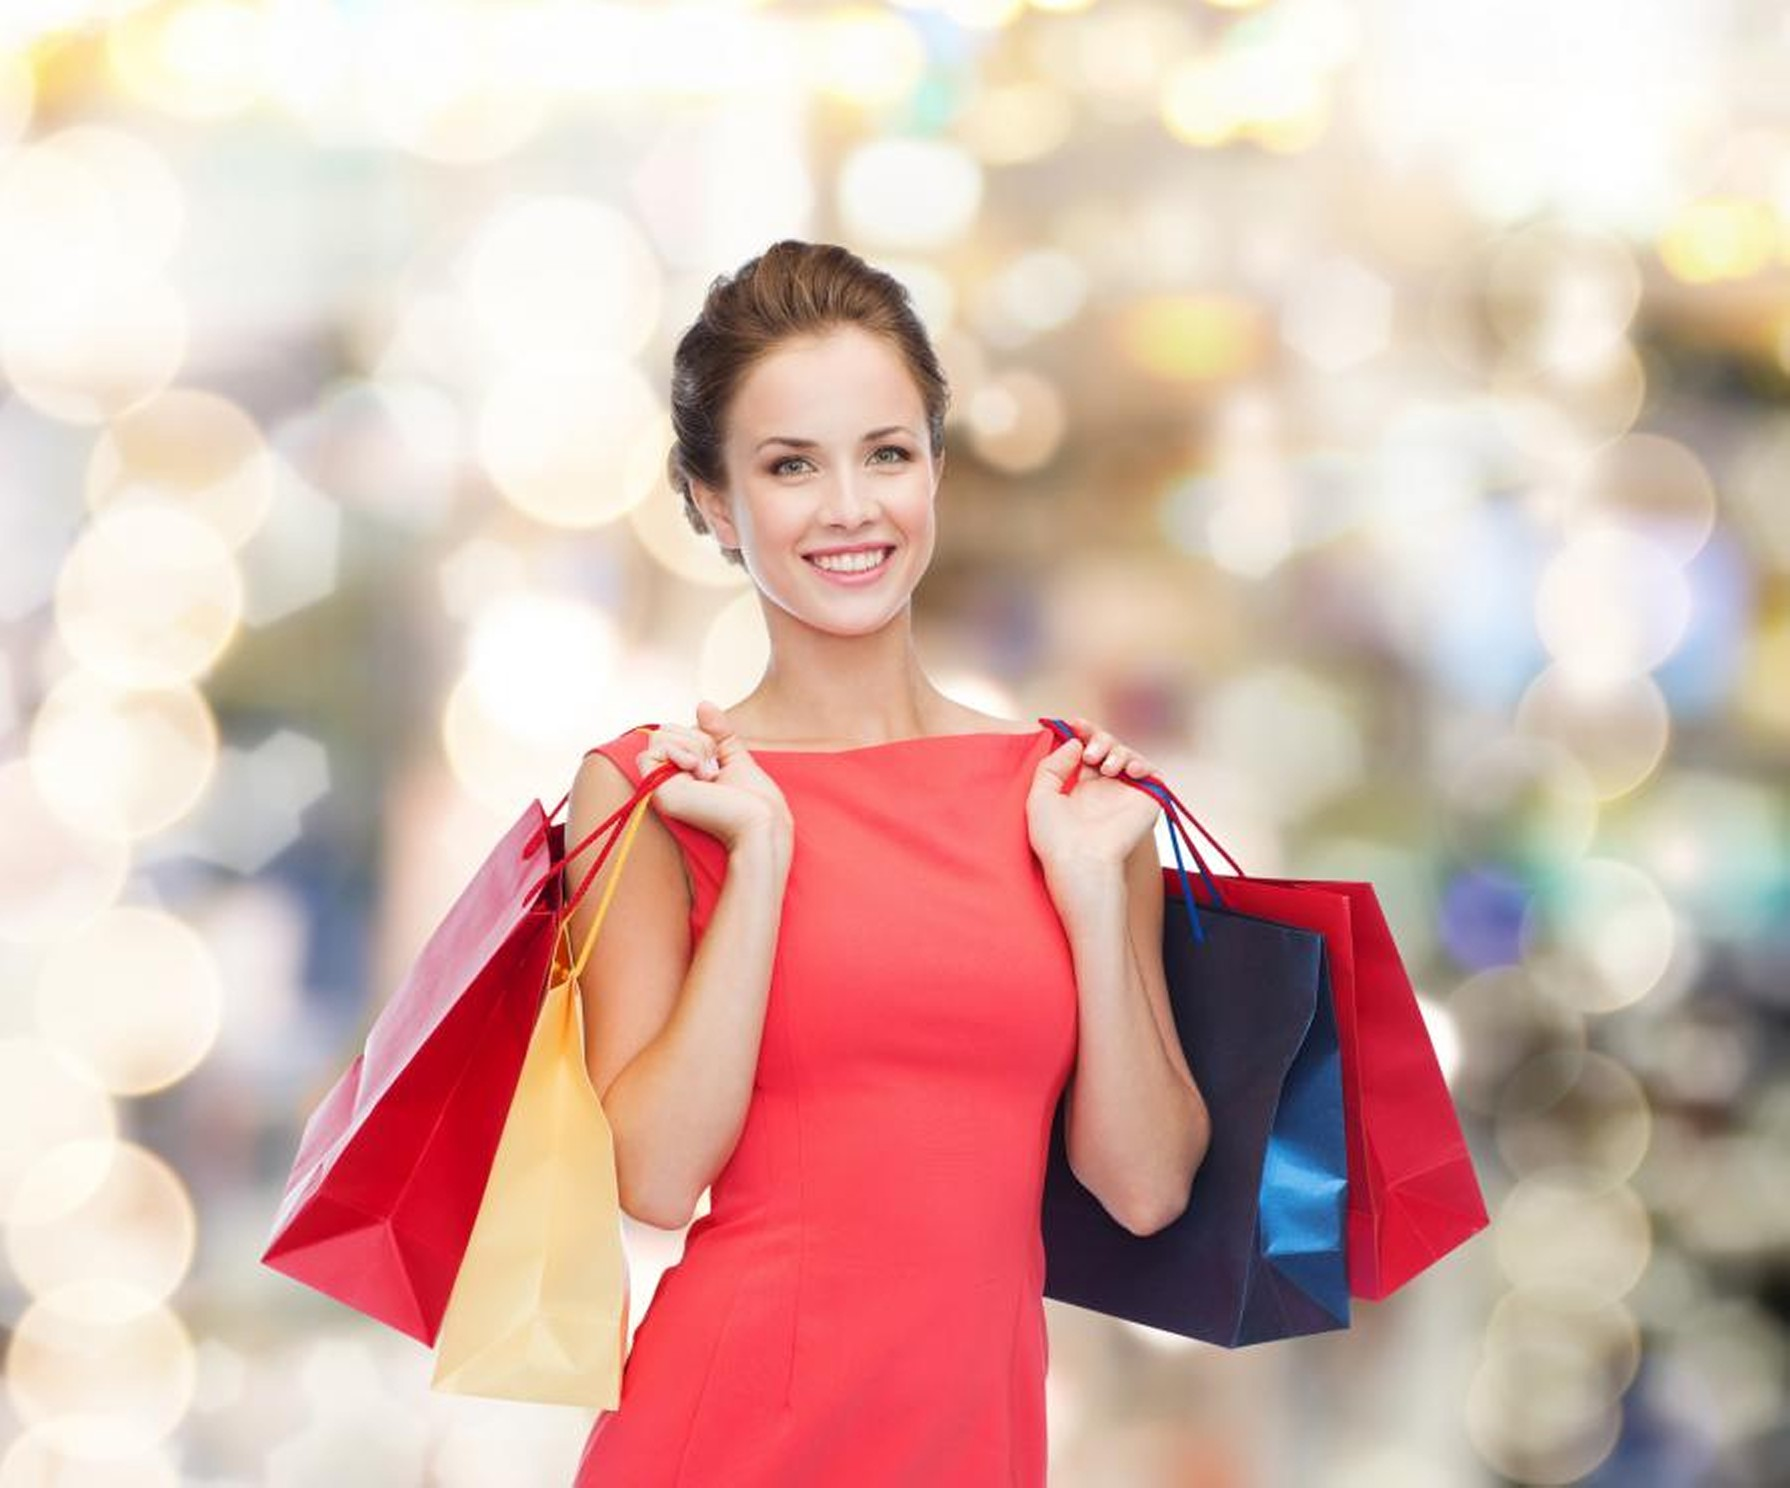 smiling-elegant-woman-in-dress-with-shopping-bags